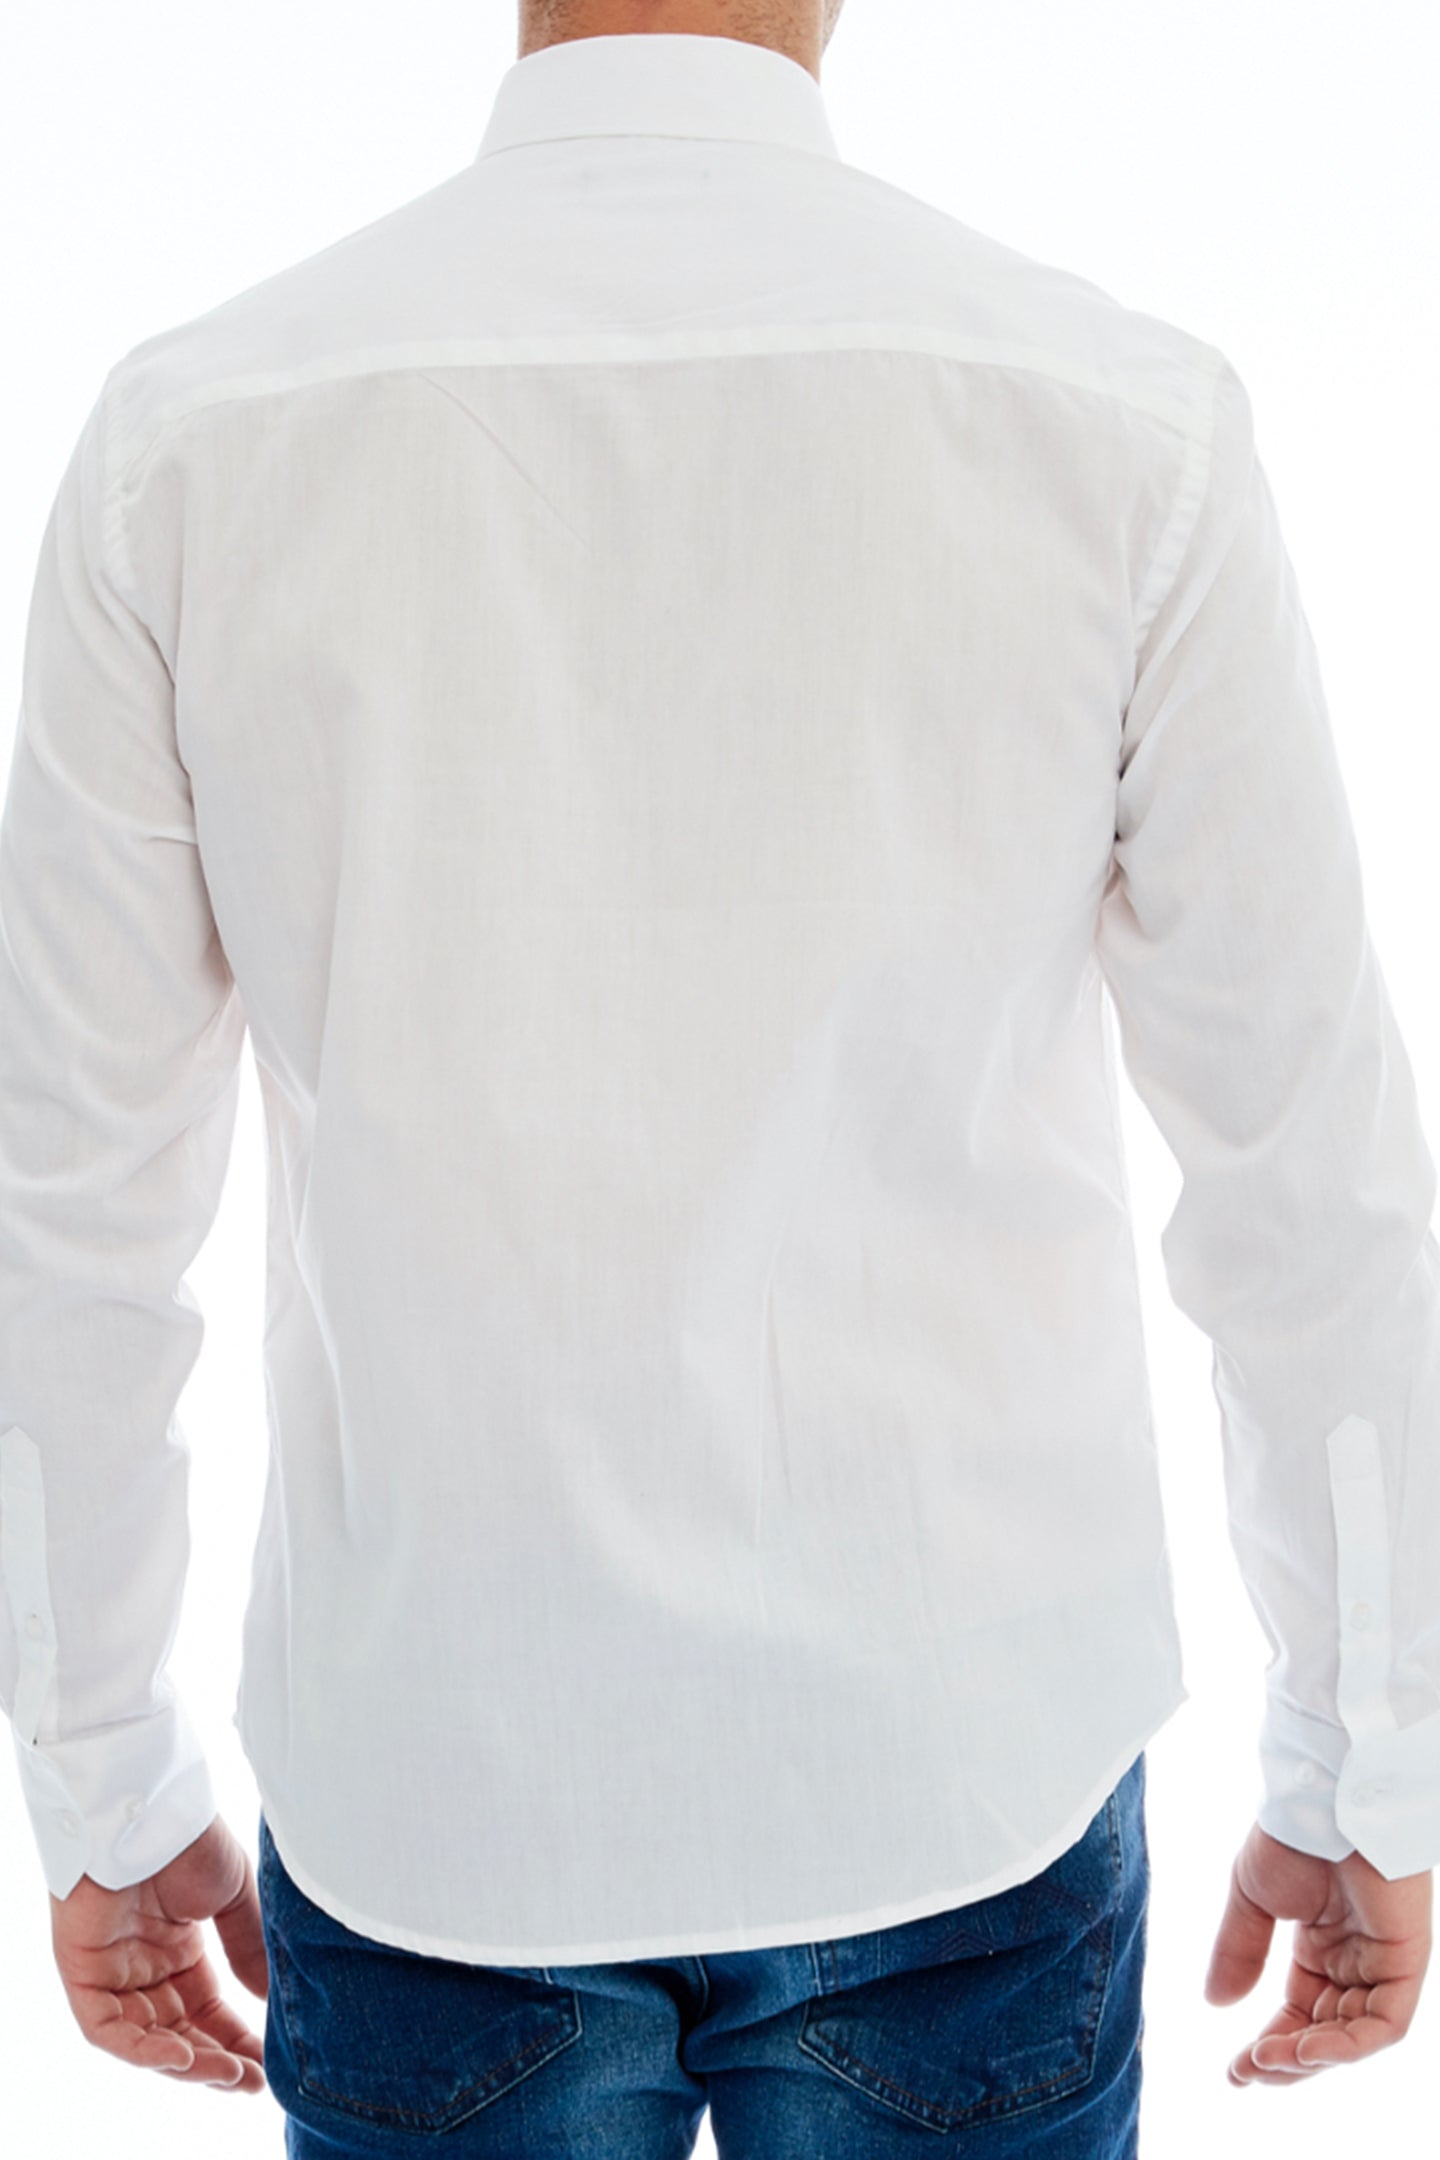 CAMISA SLIM M/L LISA OFFICE